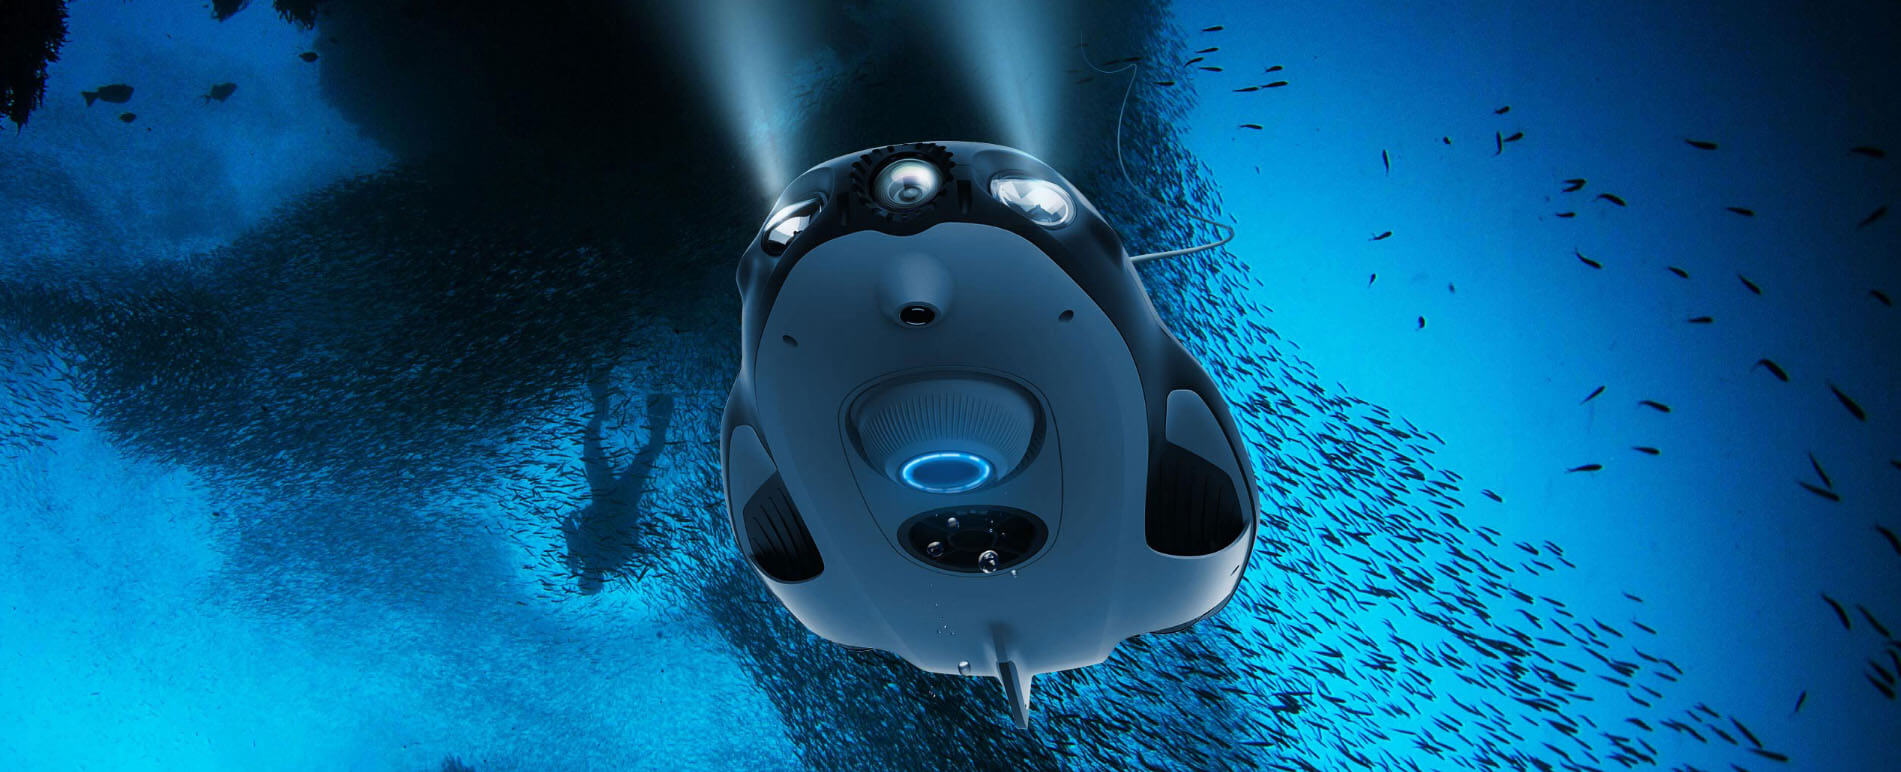 underwater drone with camera